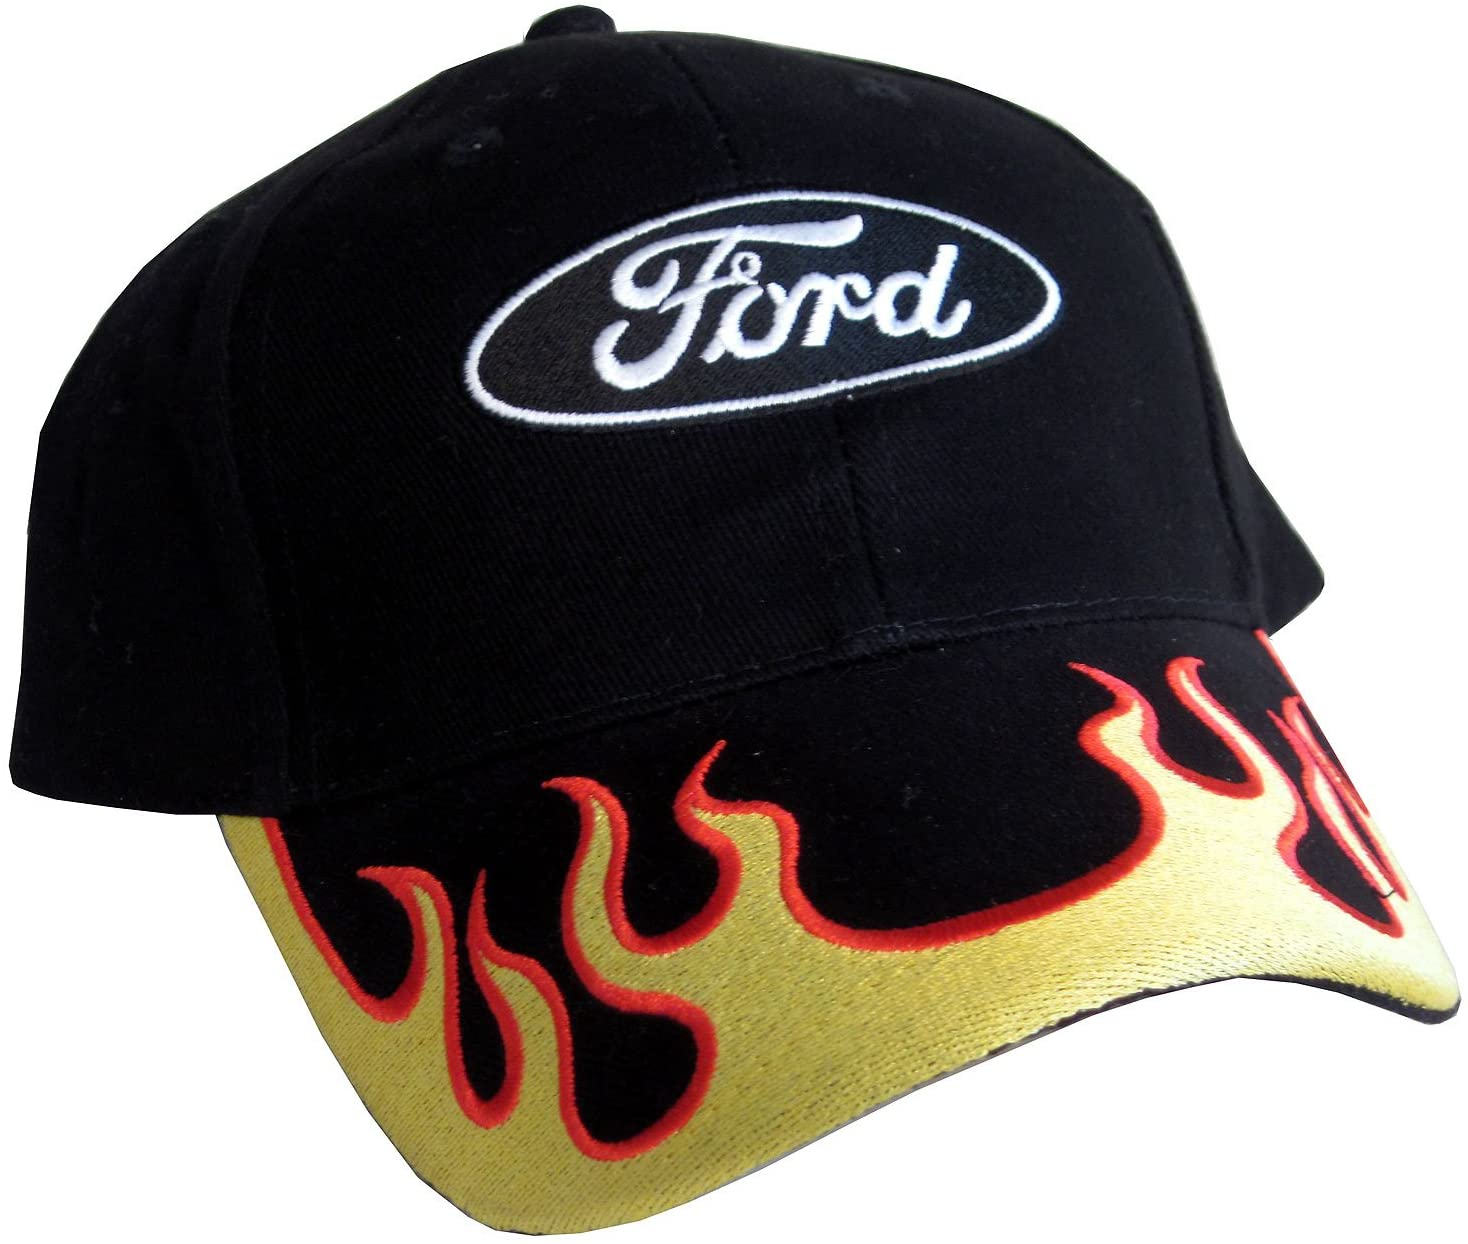 Gregs Automotive Oval Flames Logo Hat Cap Yellow/Orange Compatible with Ford - Bundle with Driving Style Decal